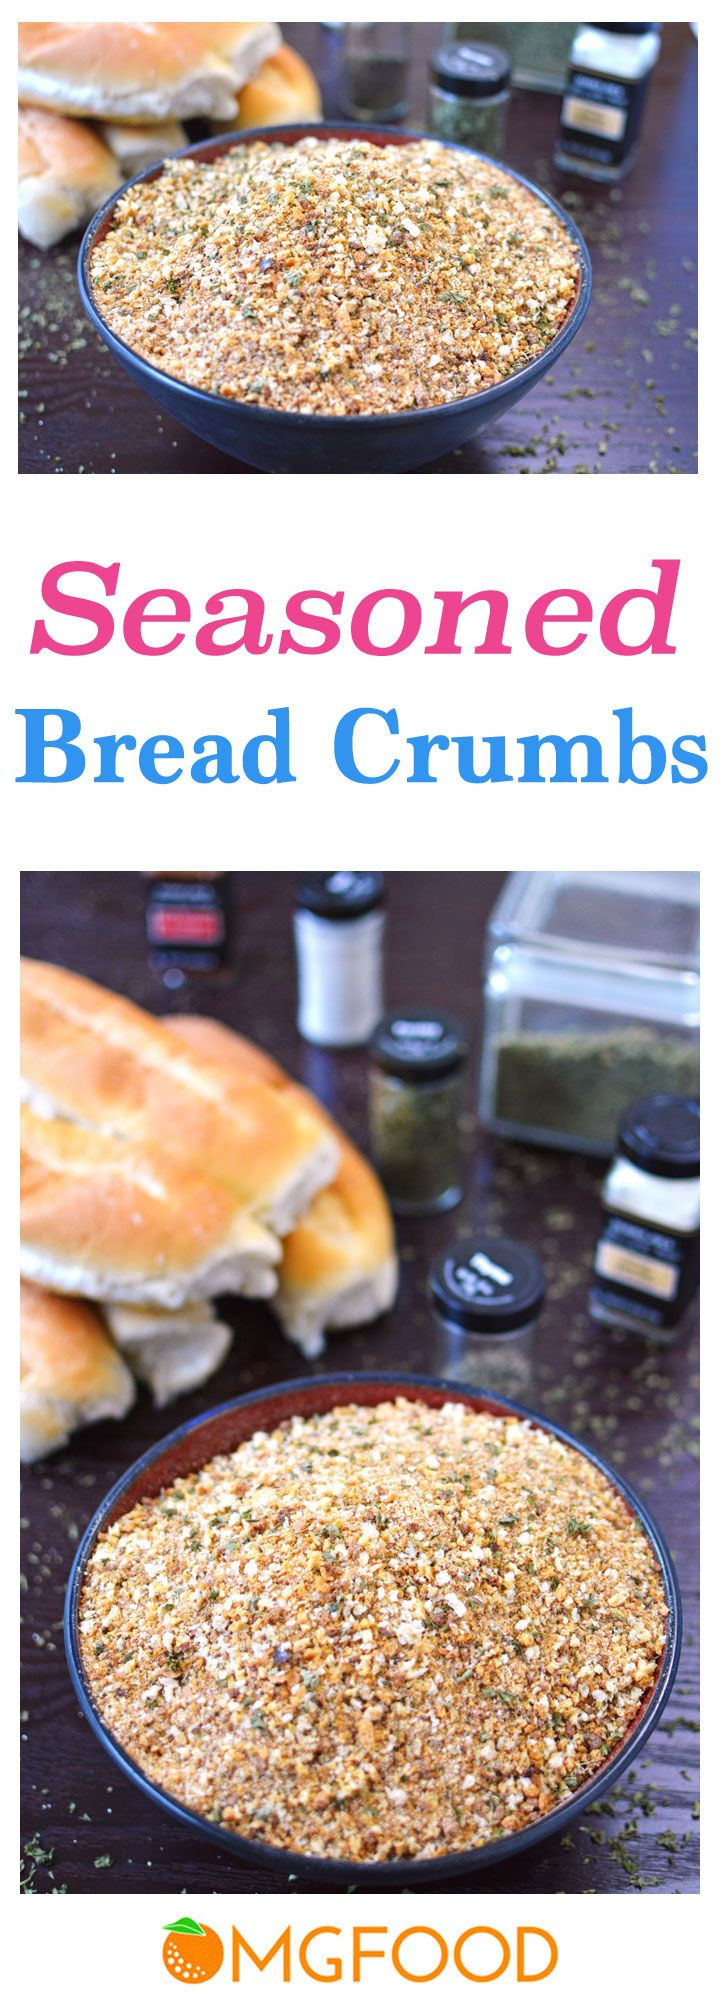 This all-purpose bread crumb mix is way better for you than the packaged stuff! | omgfood.com